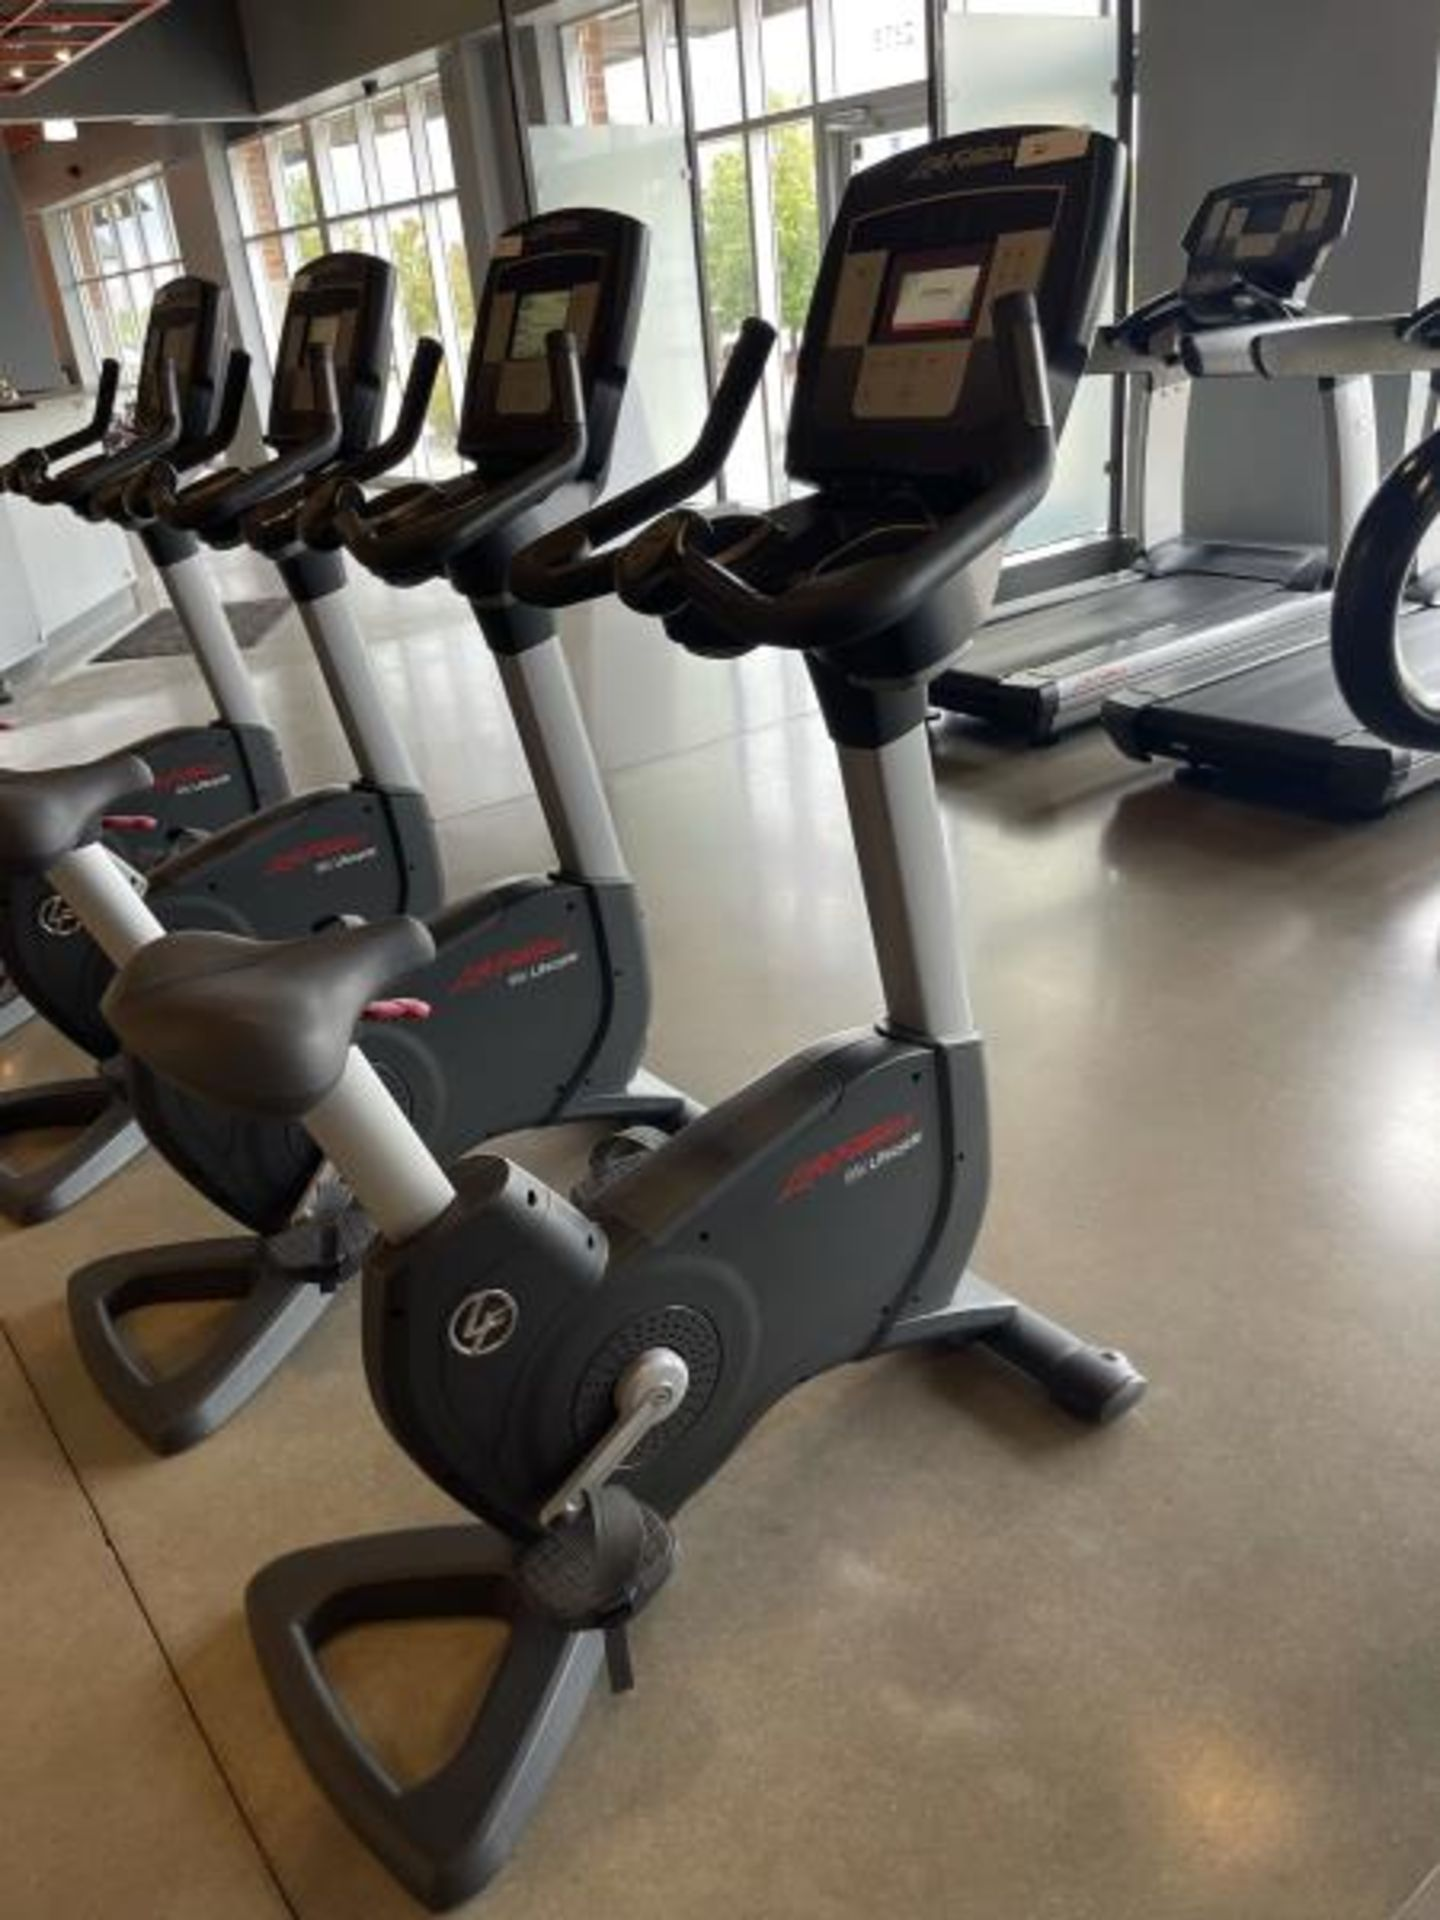 Life Fitness Exercise Bike M: 95CLifecycle, SN: CLV102815 - Image 2 of 5